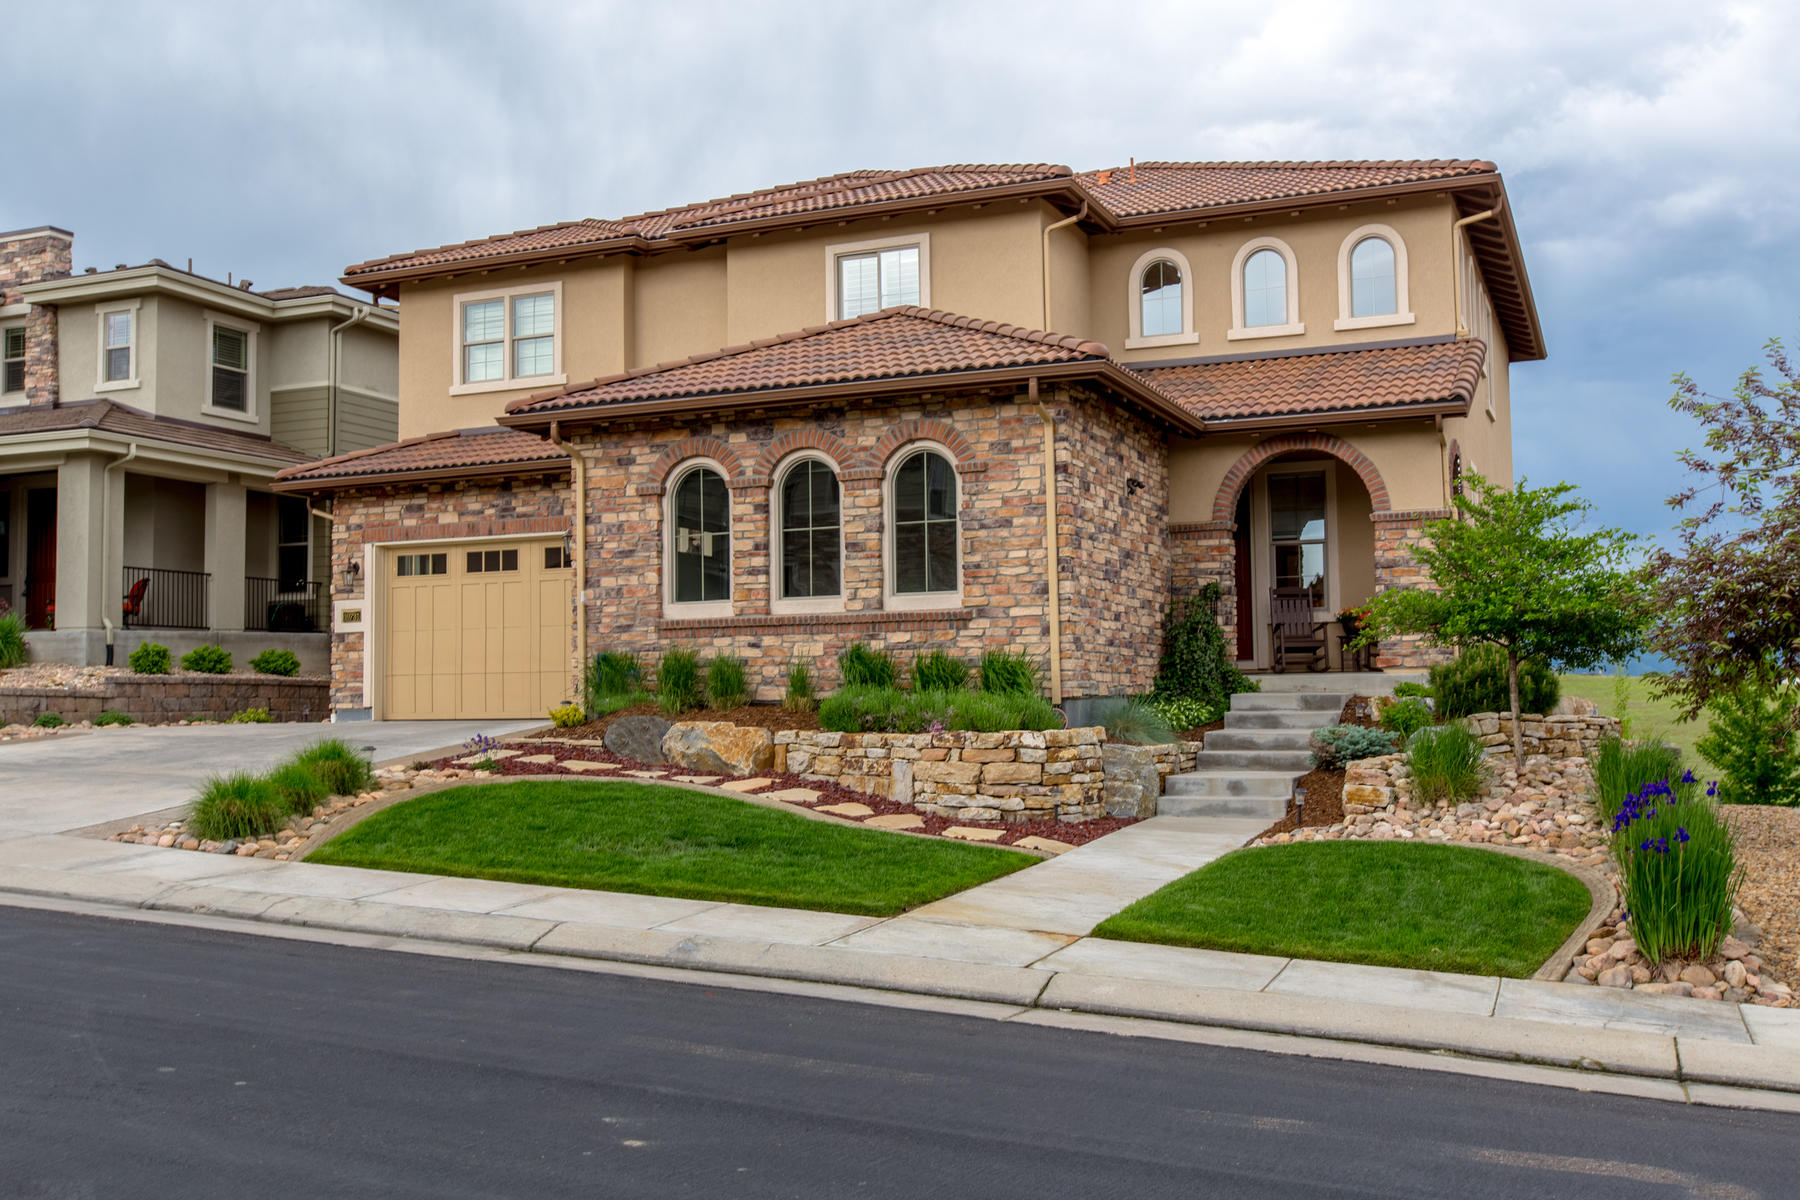 Single Family Homes για την Πώληση στο One stunning home with the most beautiful views that BackCountry has to offer. 10731 Manorstone Dr., Littleton, Κολοραντο 80126 Ηνωμένες Πολιτείες